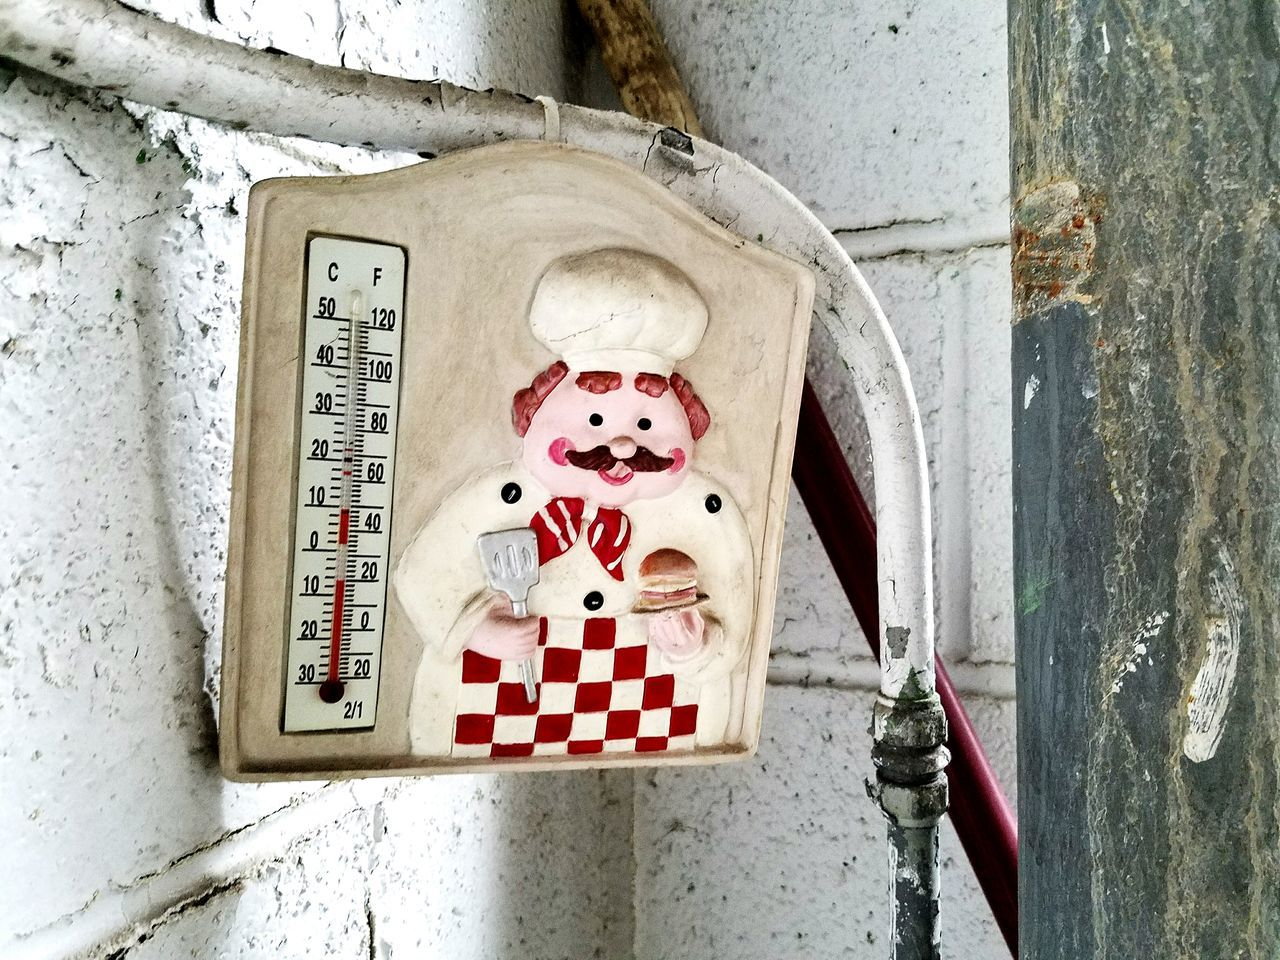 Thermometer found in abandoned building No People Abandoned Buildings Thermometer Abandoned Abandoned Places